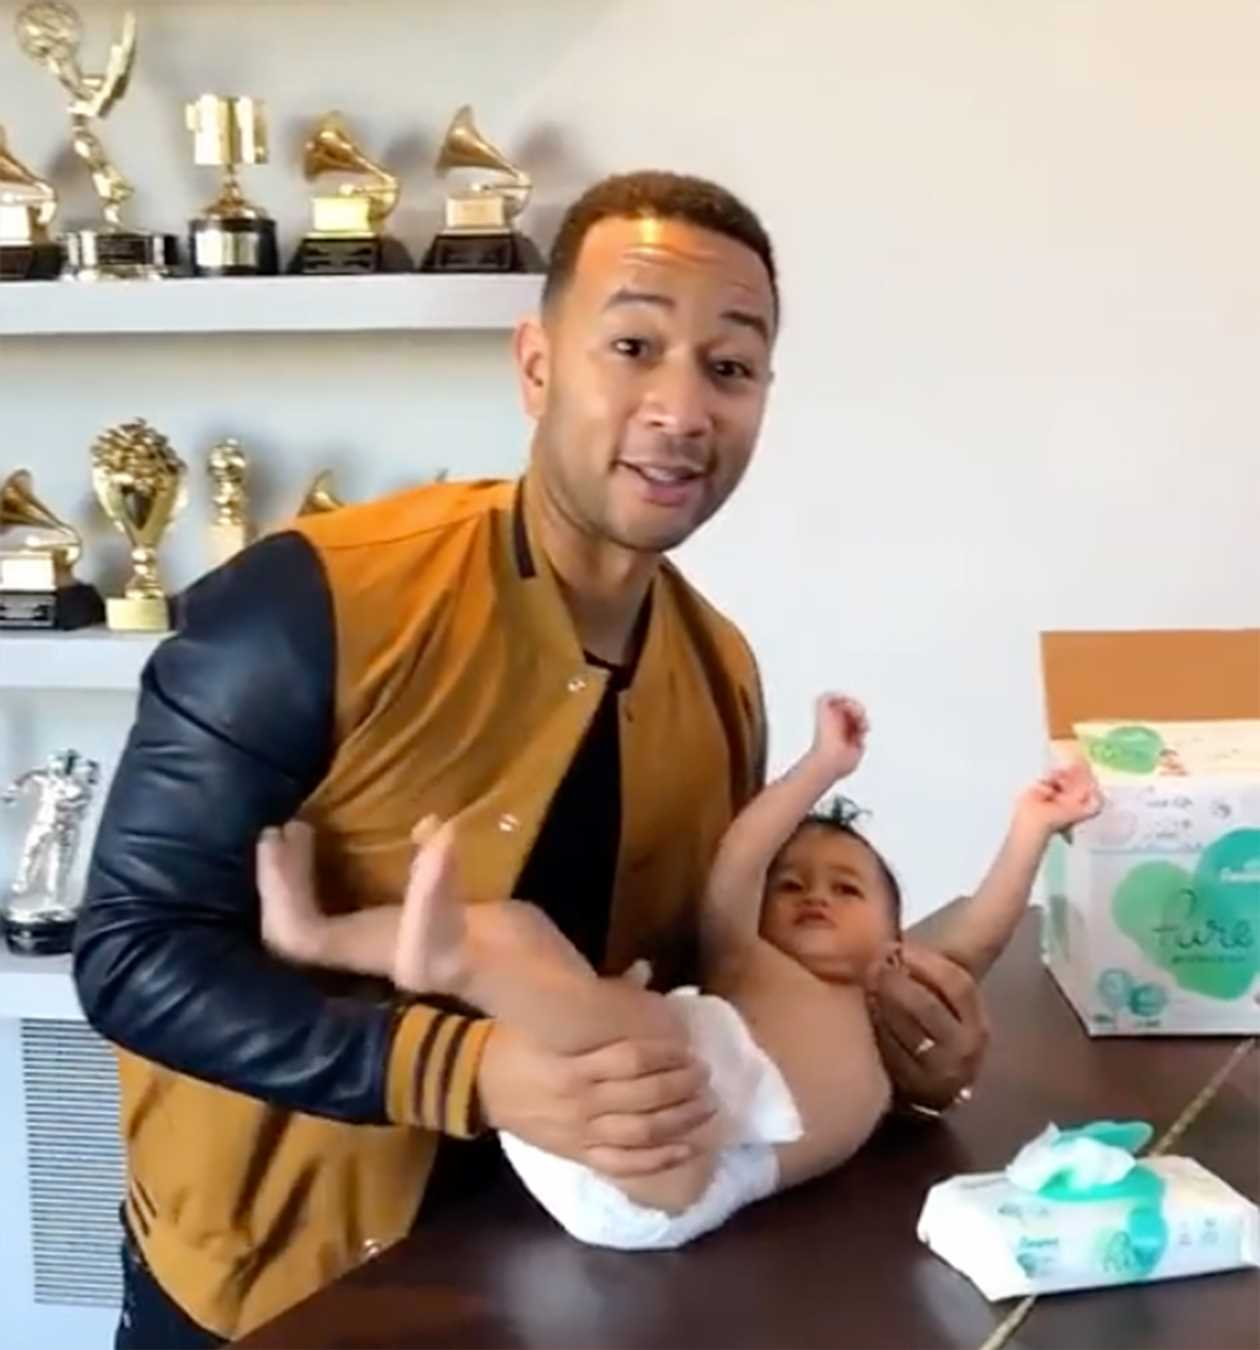 John Legend Wants Dads to Be 'Active' in Diaper Duty by Adding Changing Tables in Men's Rooms